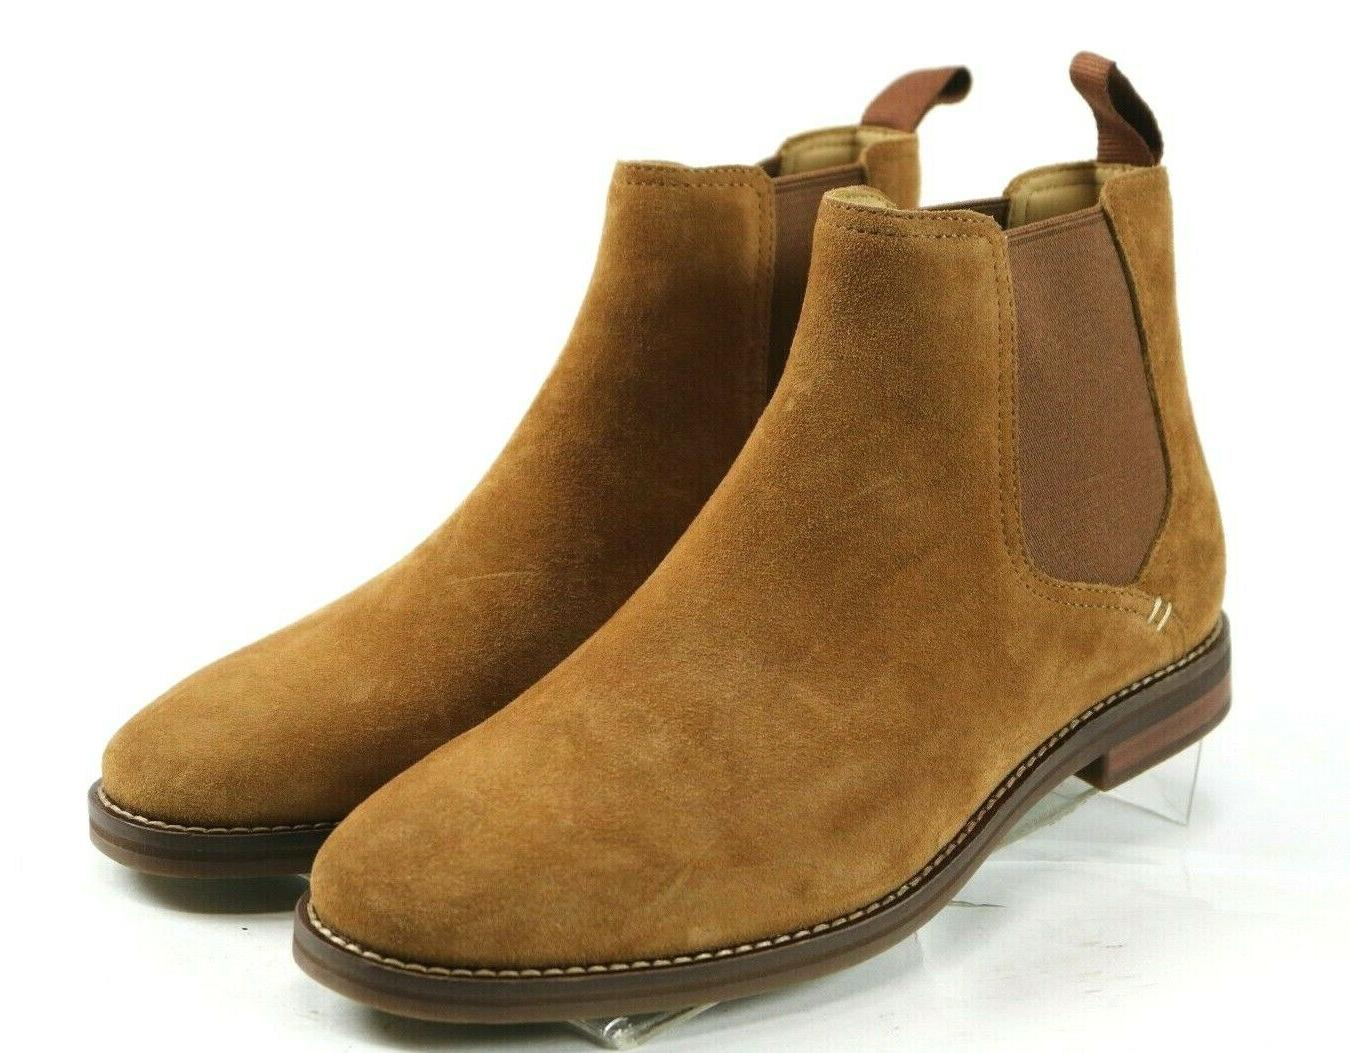 Sperry Top Gold Chelsea Boots 8 Wide